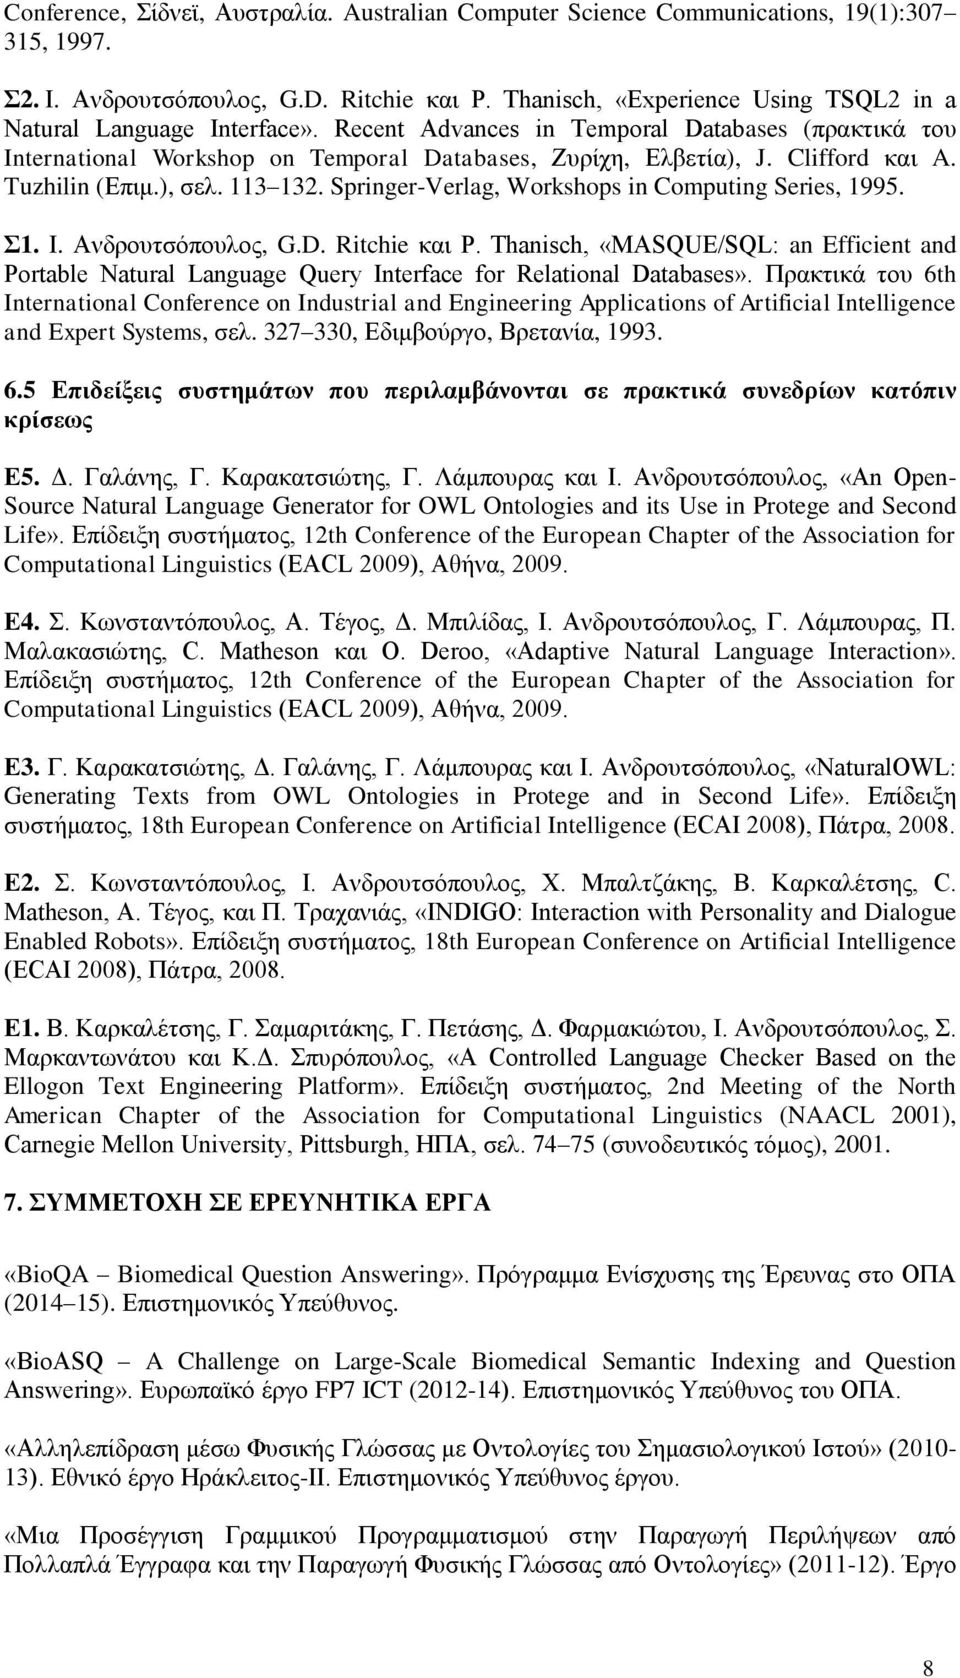 Clifford και A. Tuzhilin (Επιμ.), σελ. 113 132. Springer-Verlag, Workshops in Computing Series, 1995. Σ1. Ι. Ανδρουτσόπουλος, G.D. Ritchie και P.